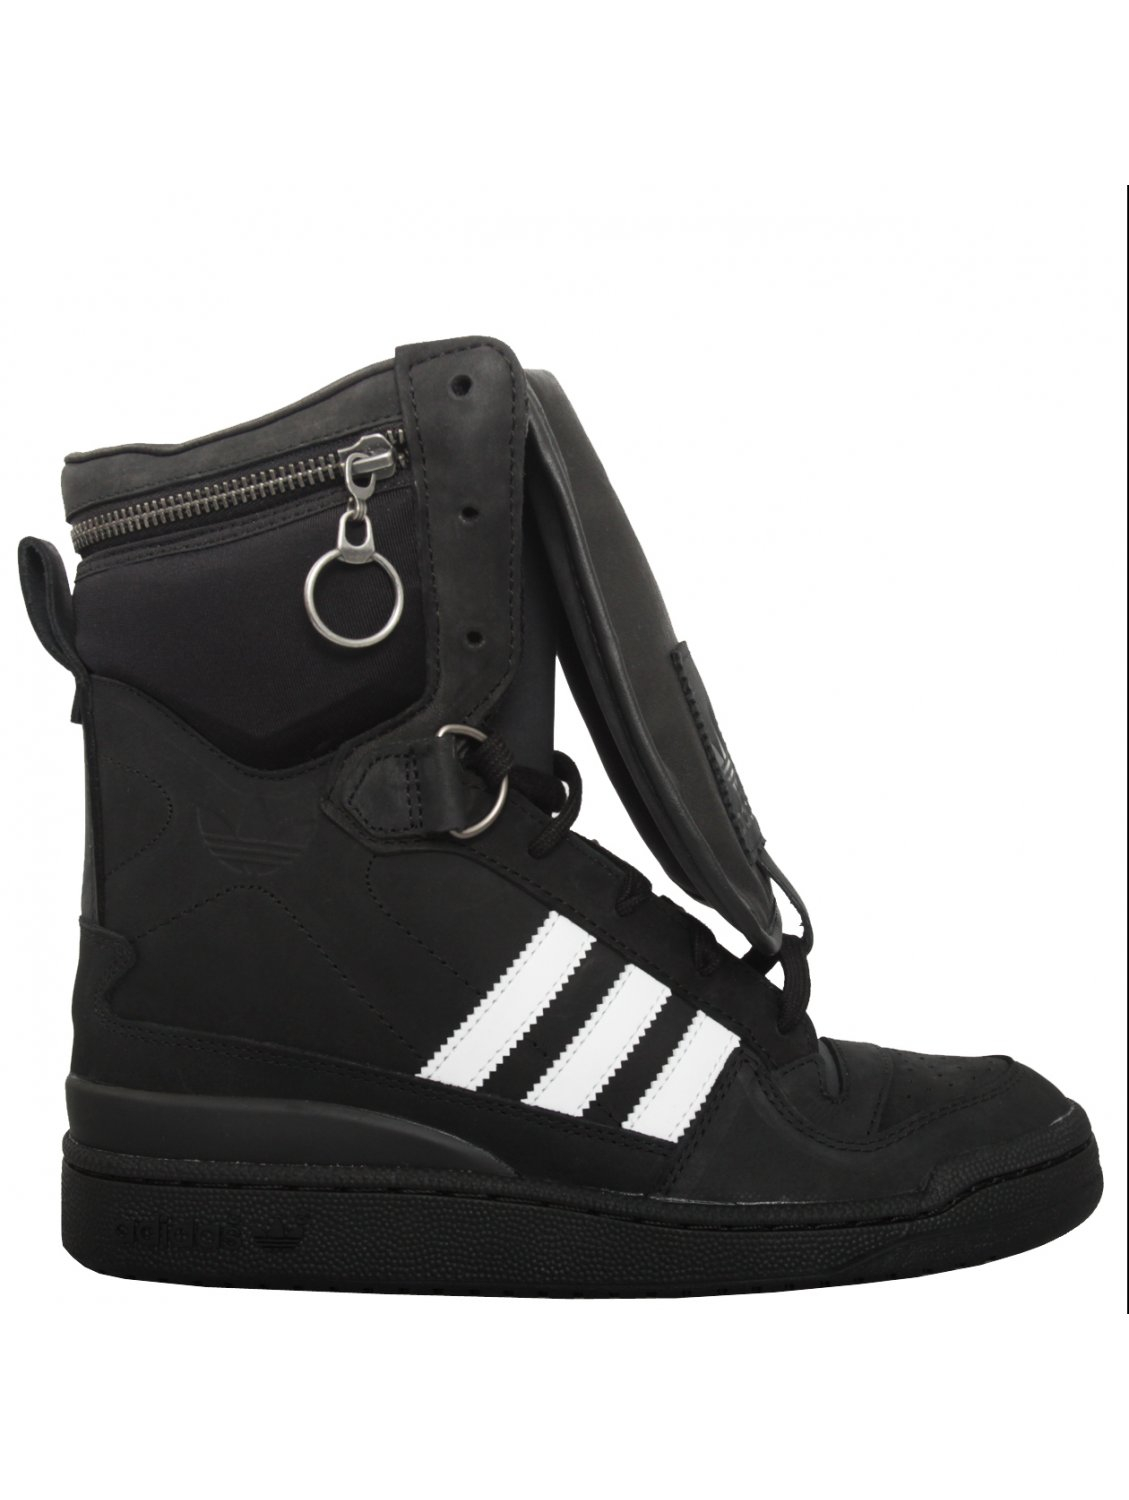 Jeremy scott for adidas Tall Boy High Sneakers Black in ...